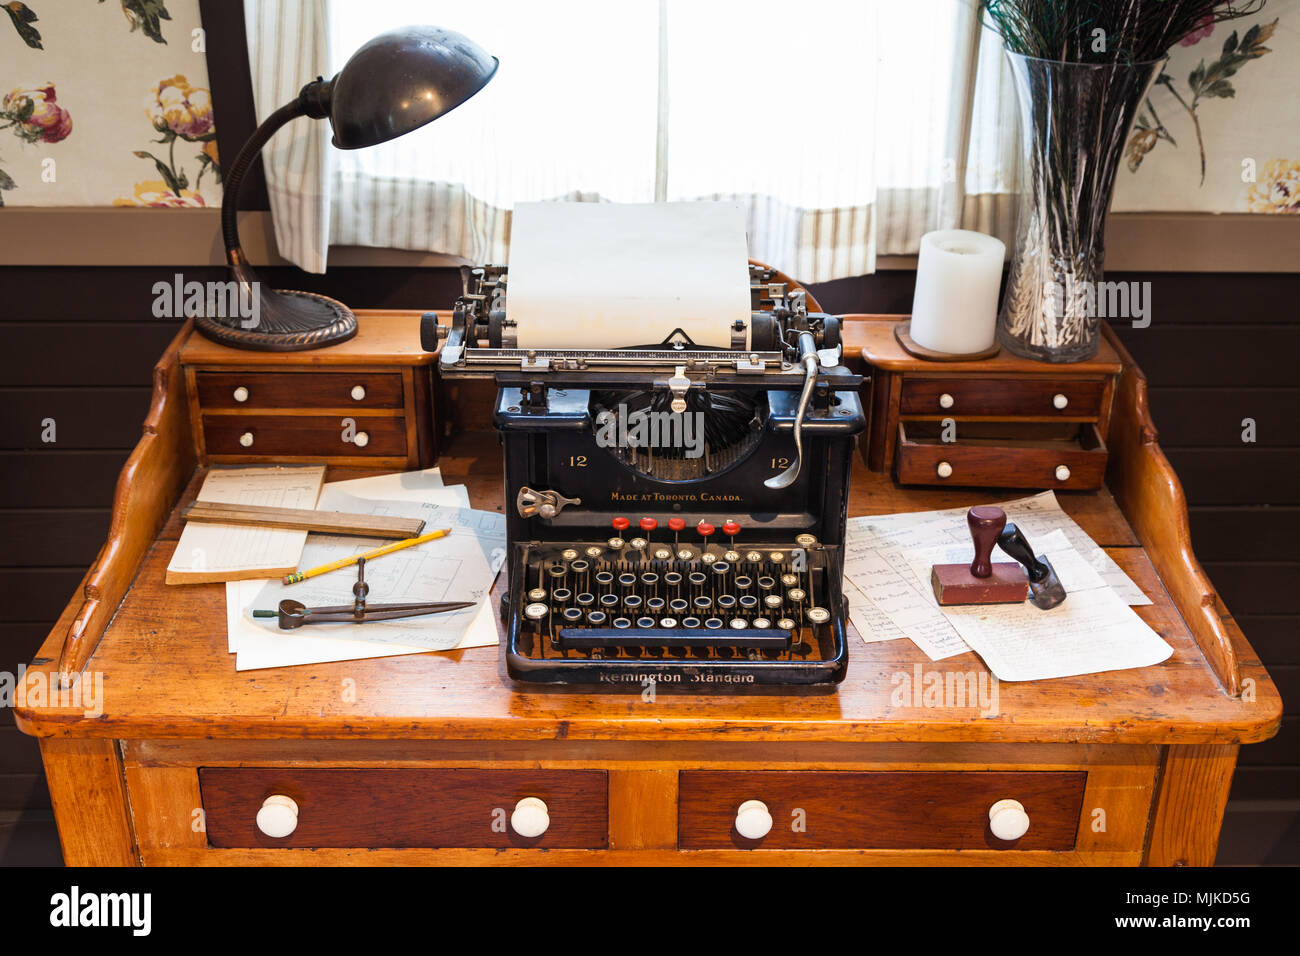 Antique Remington typewriter on an old wooden desk - Antique Remington Typewriter On An Old Wooden Desk Stock Photo